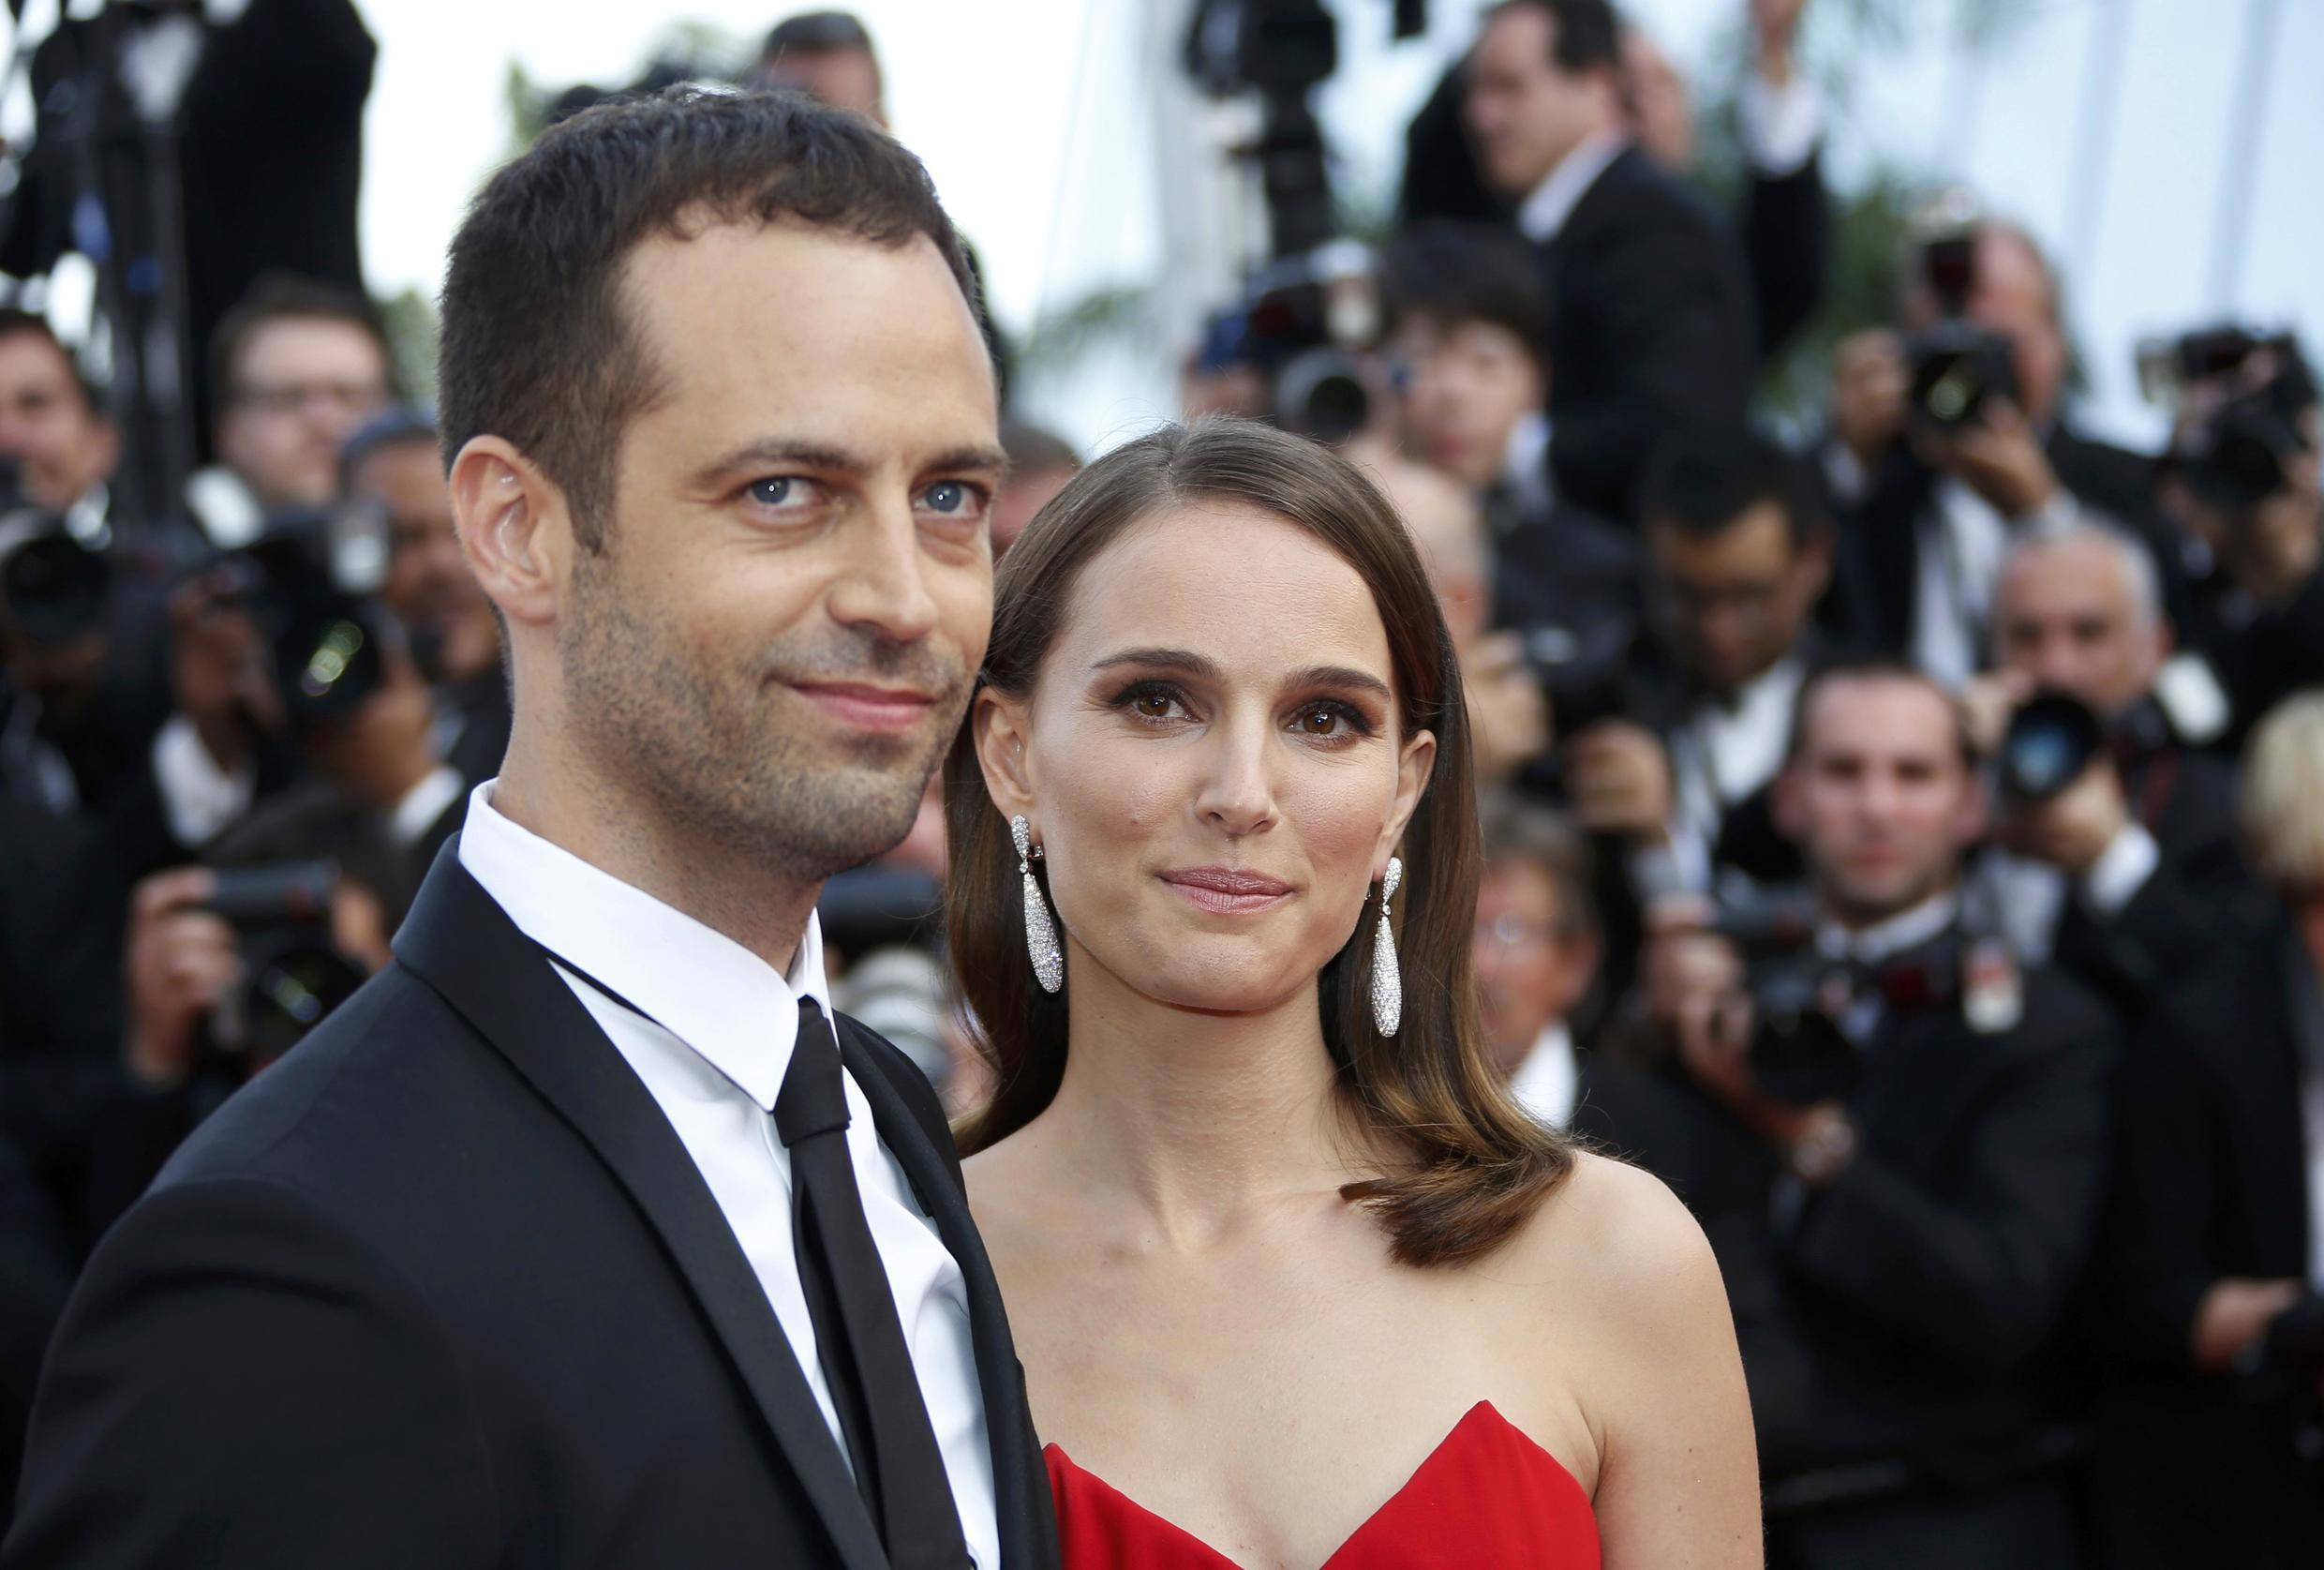 Choreographer Benjamin Millepied with wife Natalie Portman, at the 2015 Cannes Film Festival,